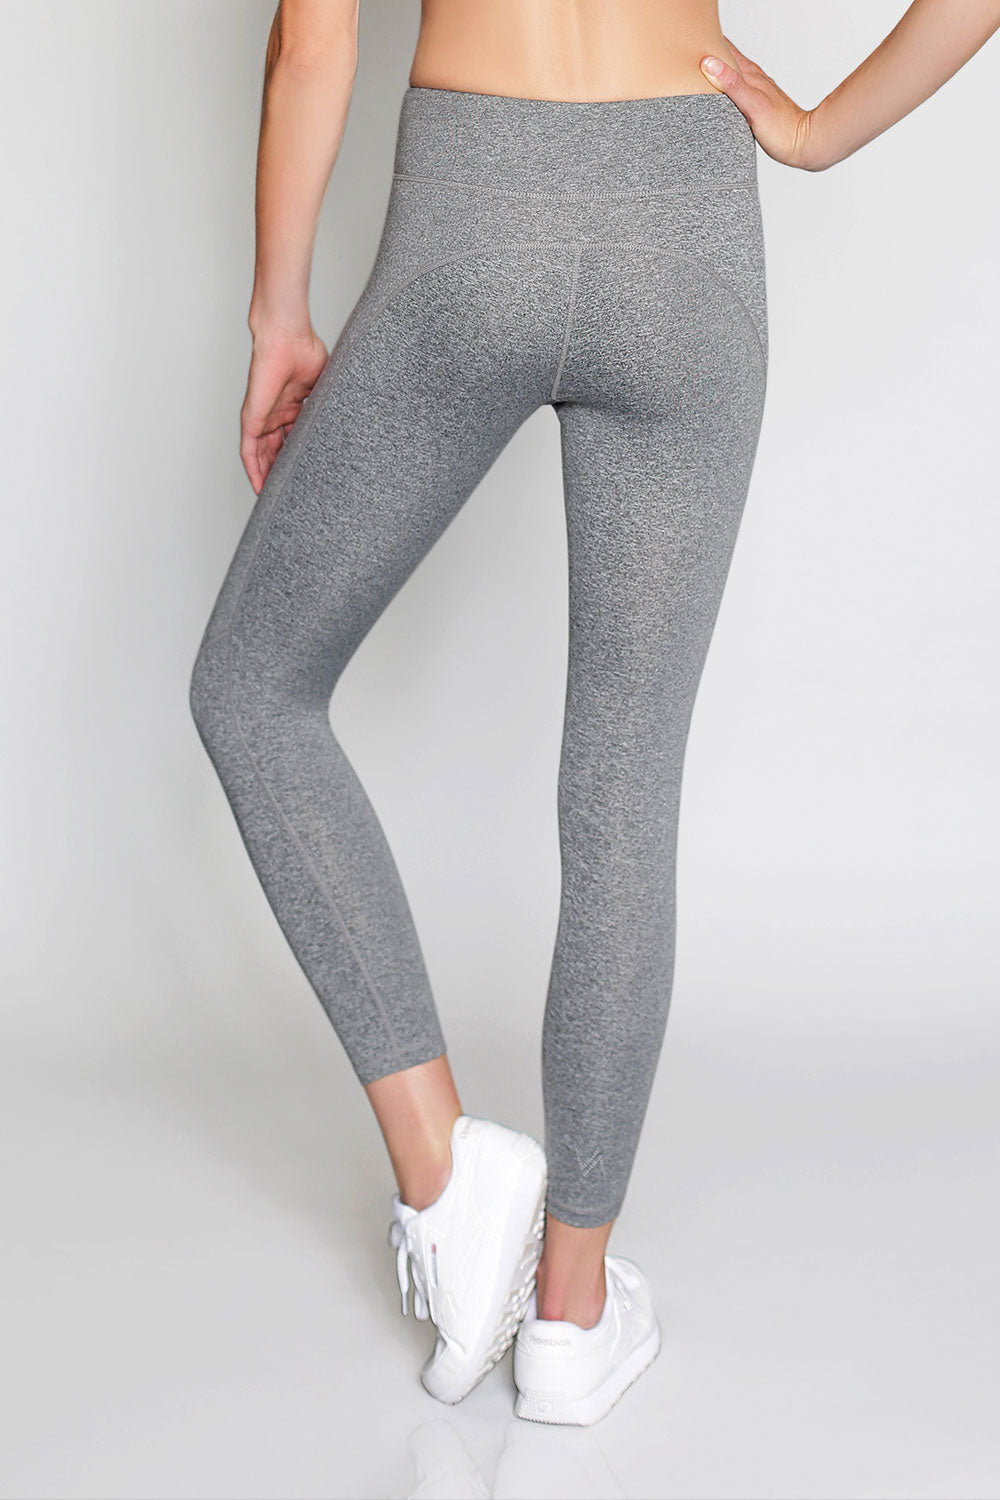 Vie Active Roxanne 7/8 Legging - Sculptique